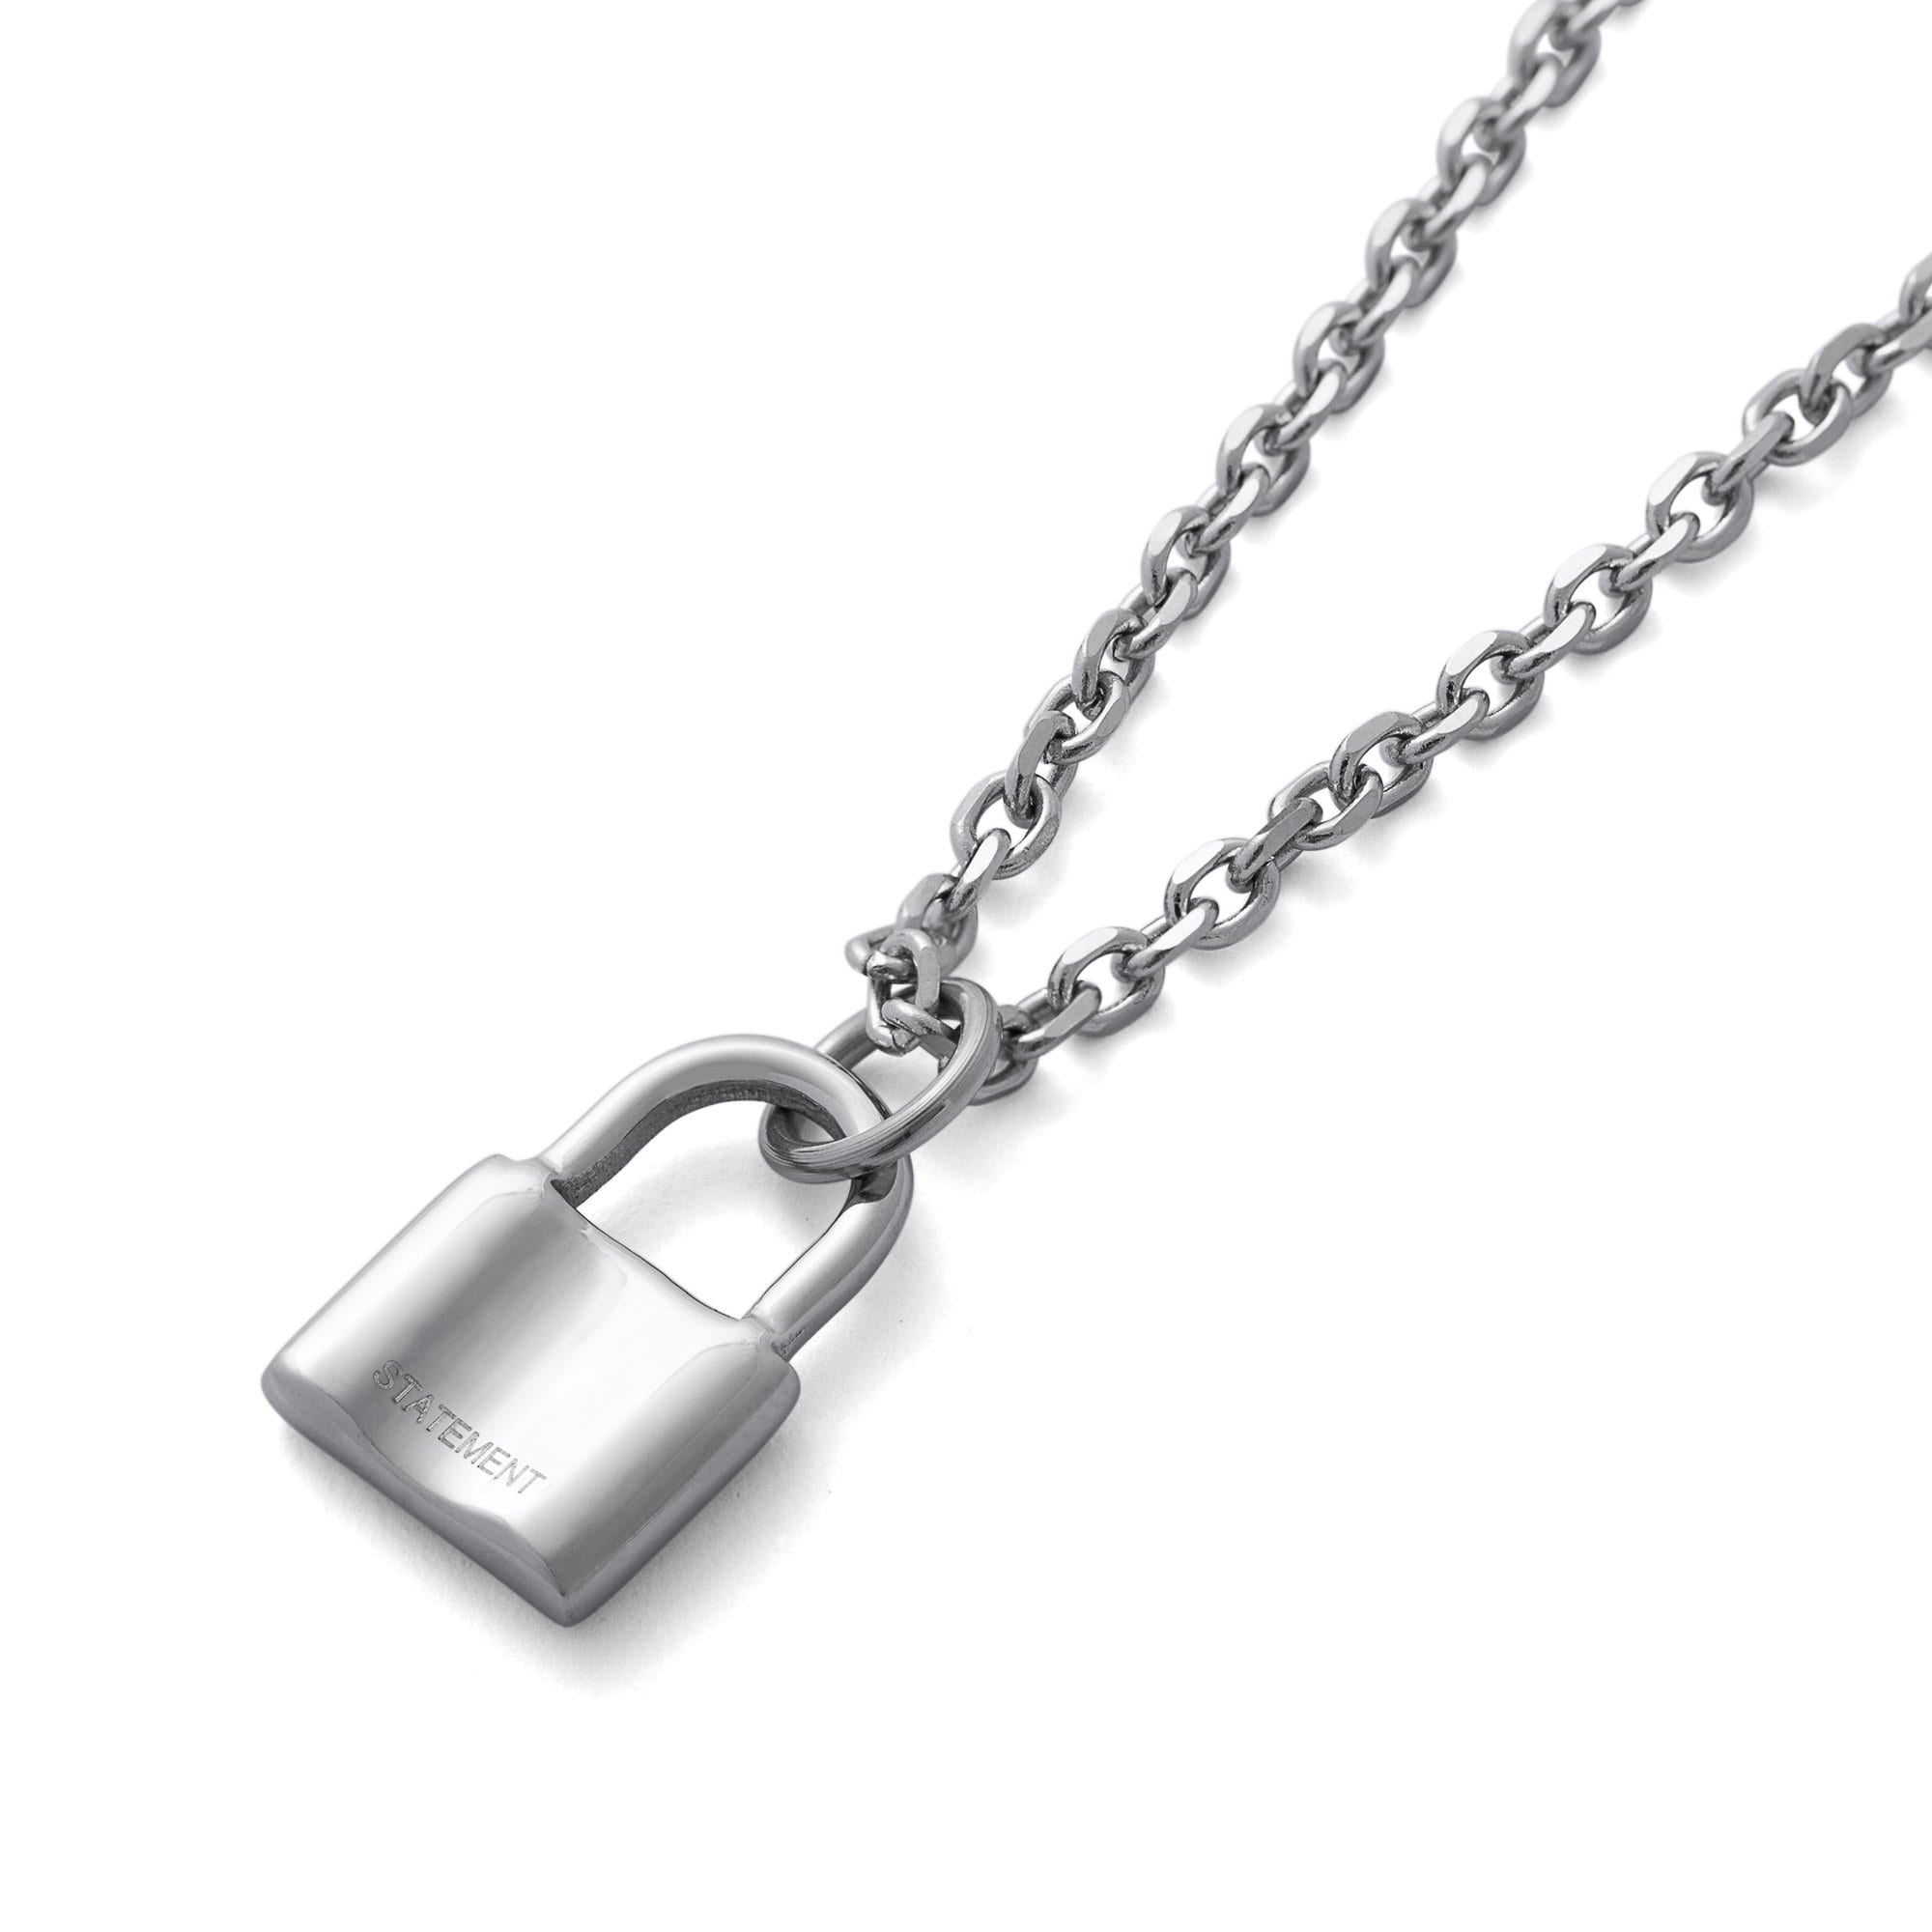 Mini Padlock Necklace Pendant by Statement Collective_01